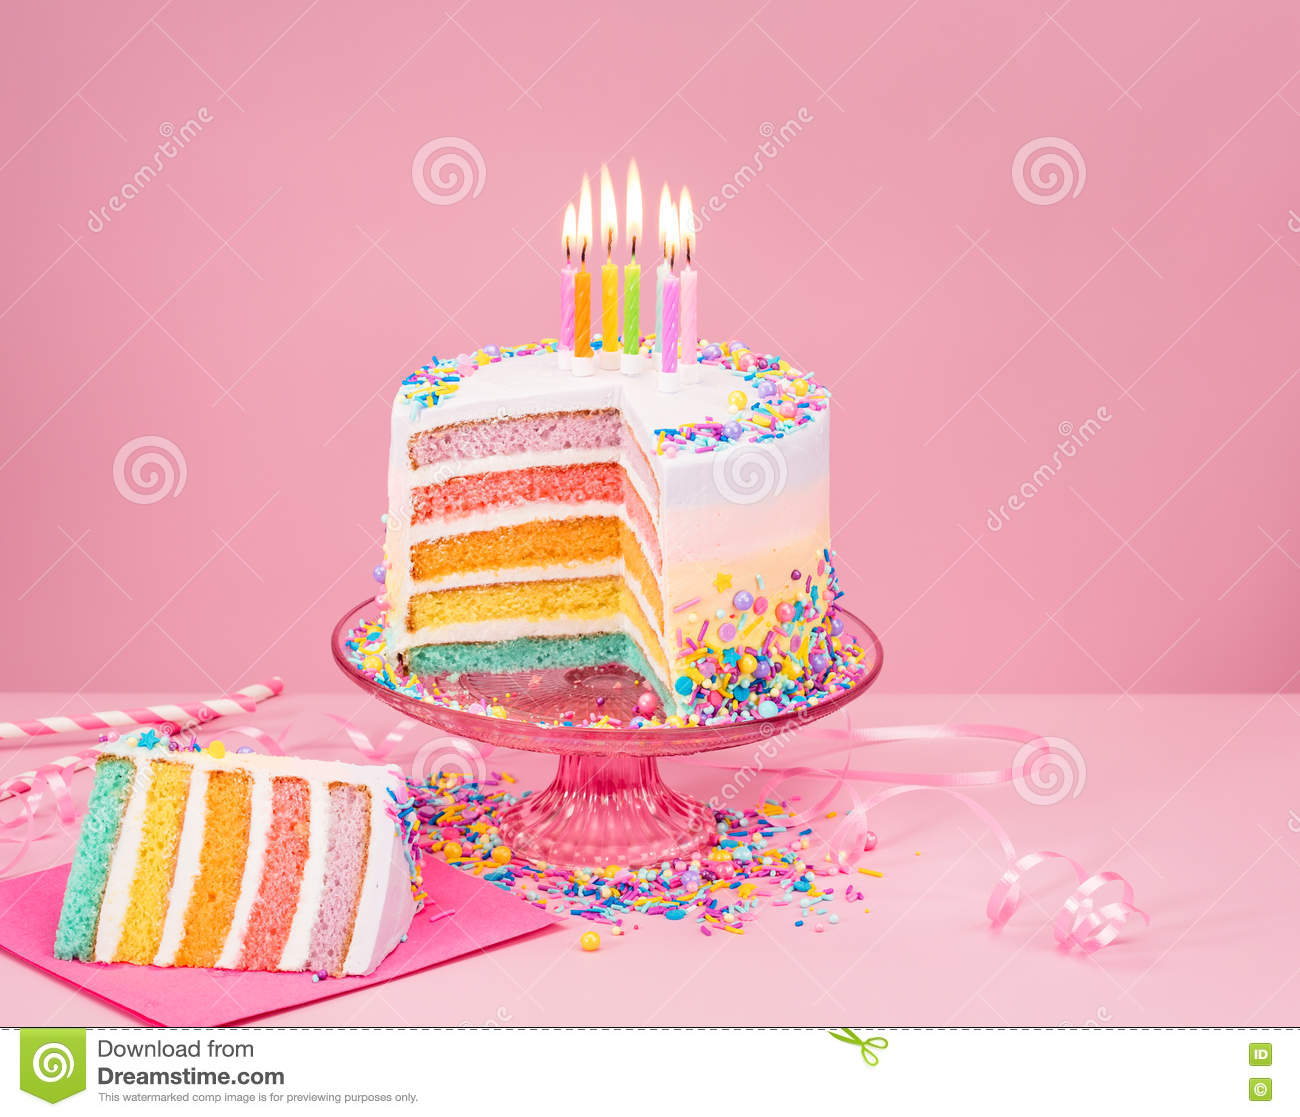 Colorful Birthday Cake Over Pink Stock Photo Image Of Confection